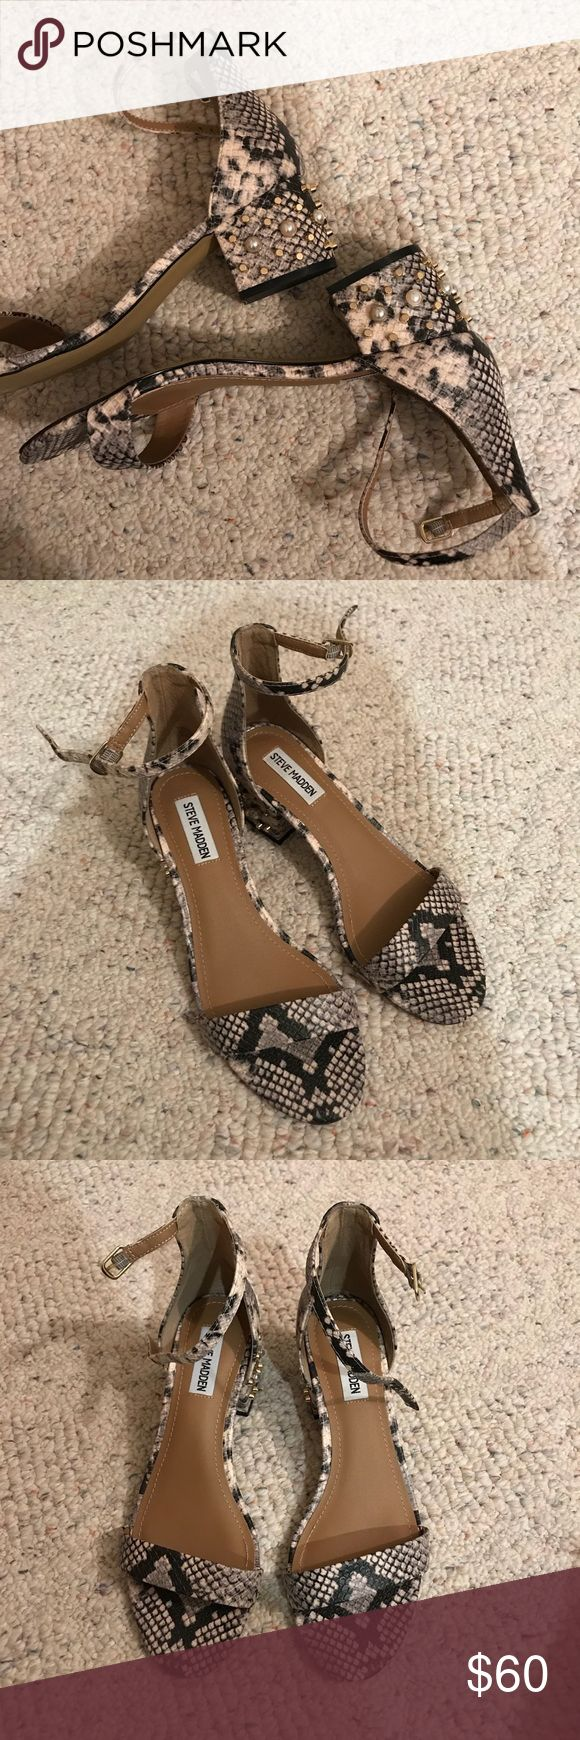 Snake Skin Pearl Studded Heels Brand new, only tired on. Selling because unfortunately these are too big on me and I️ can't wear them without being uncomfortable. The heel is about 1 inch. Firm on this price, thank you :) Steve Madden Shoes Heels